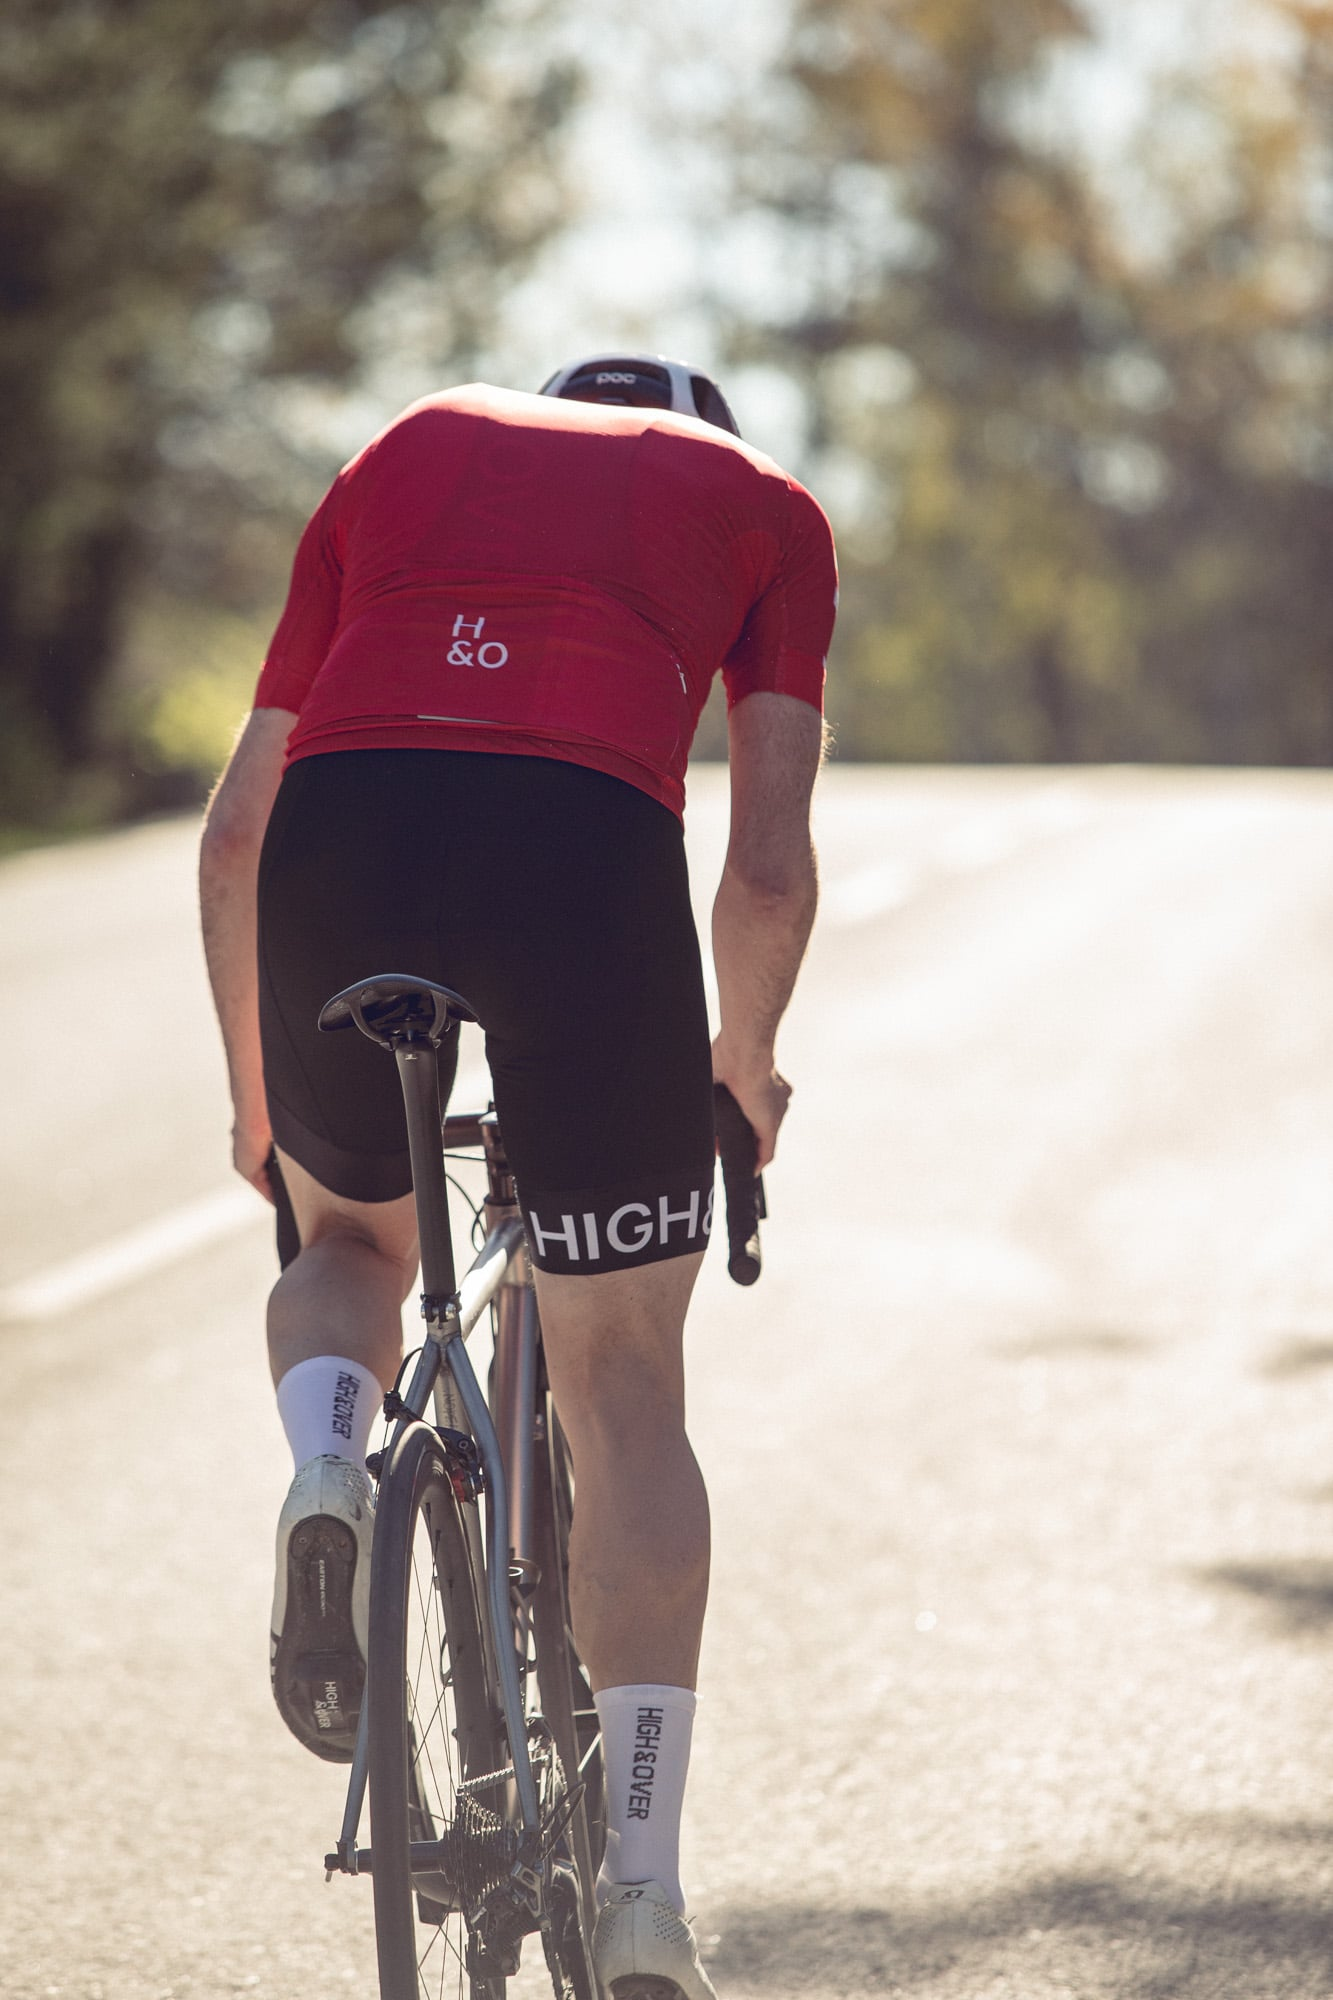 HIGH and OVER cycling kit